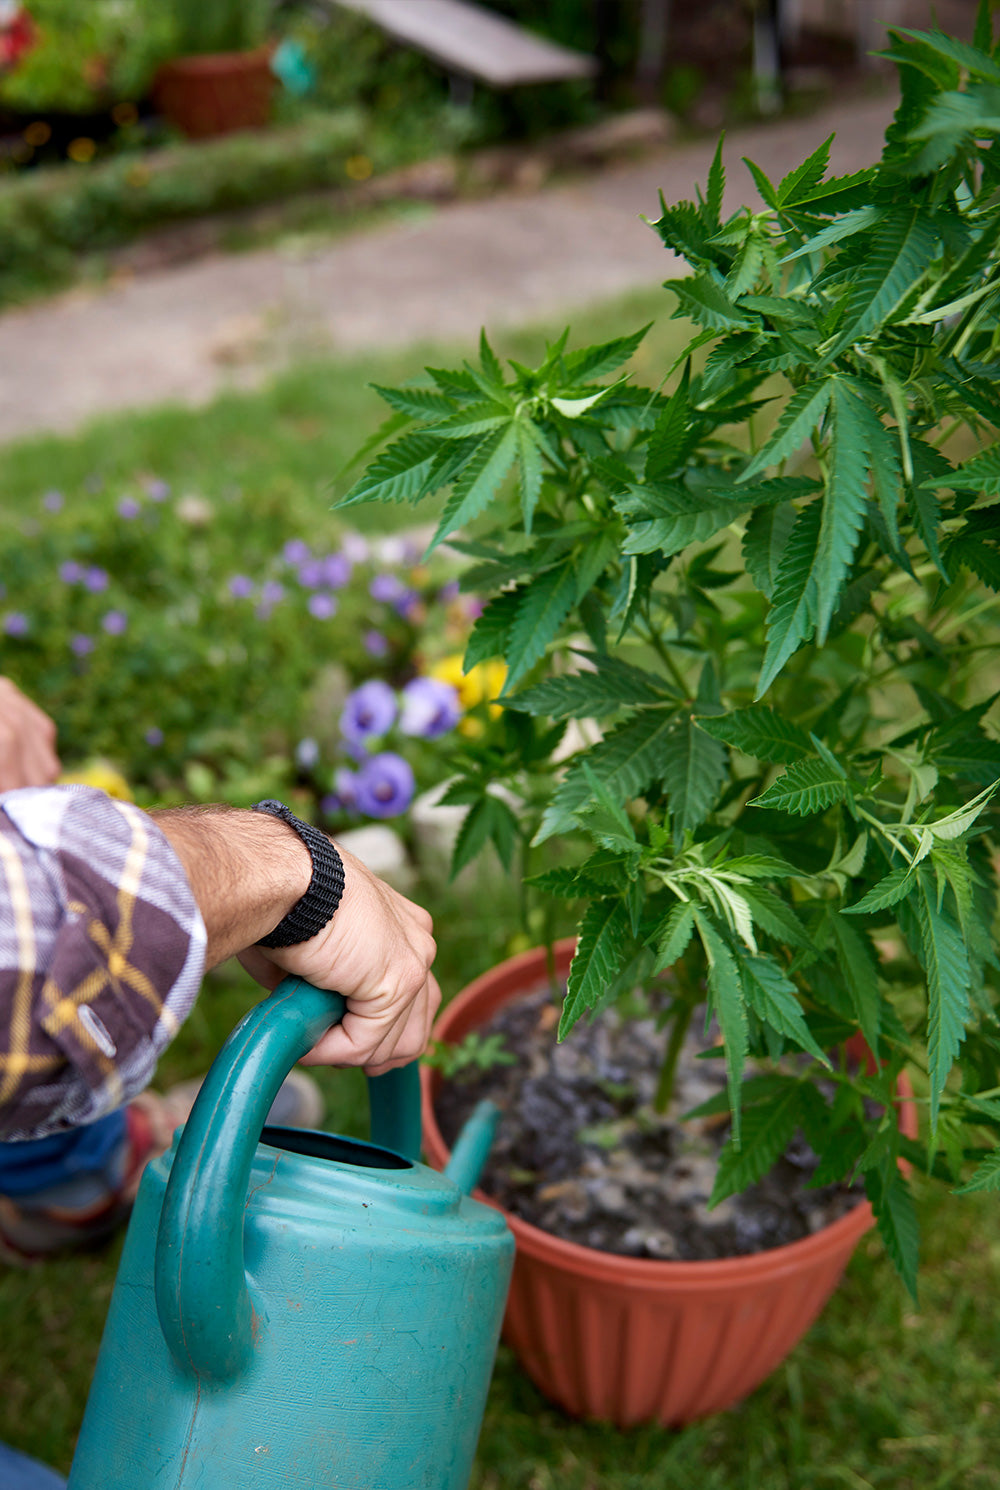 How to Grow Cannabis Outdoors | Ontario Cannabis Store